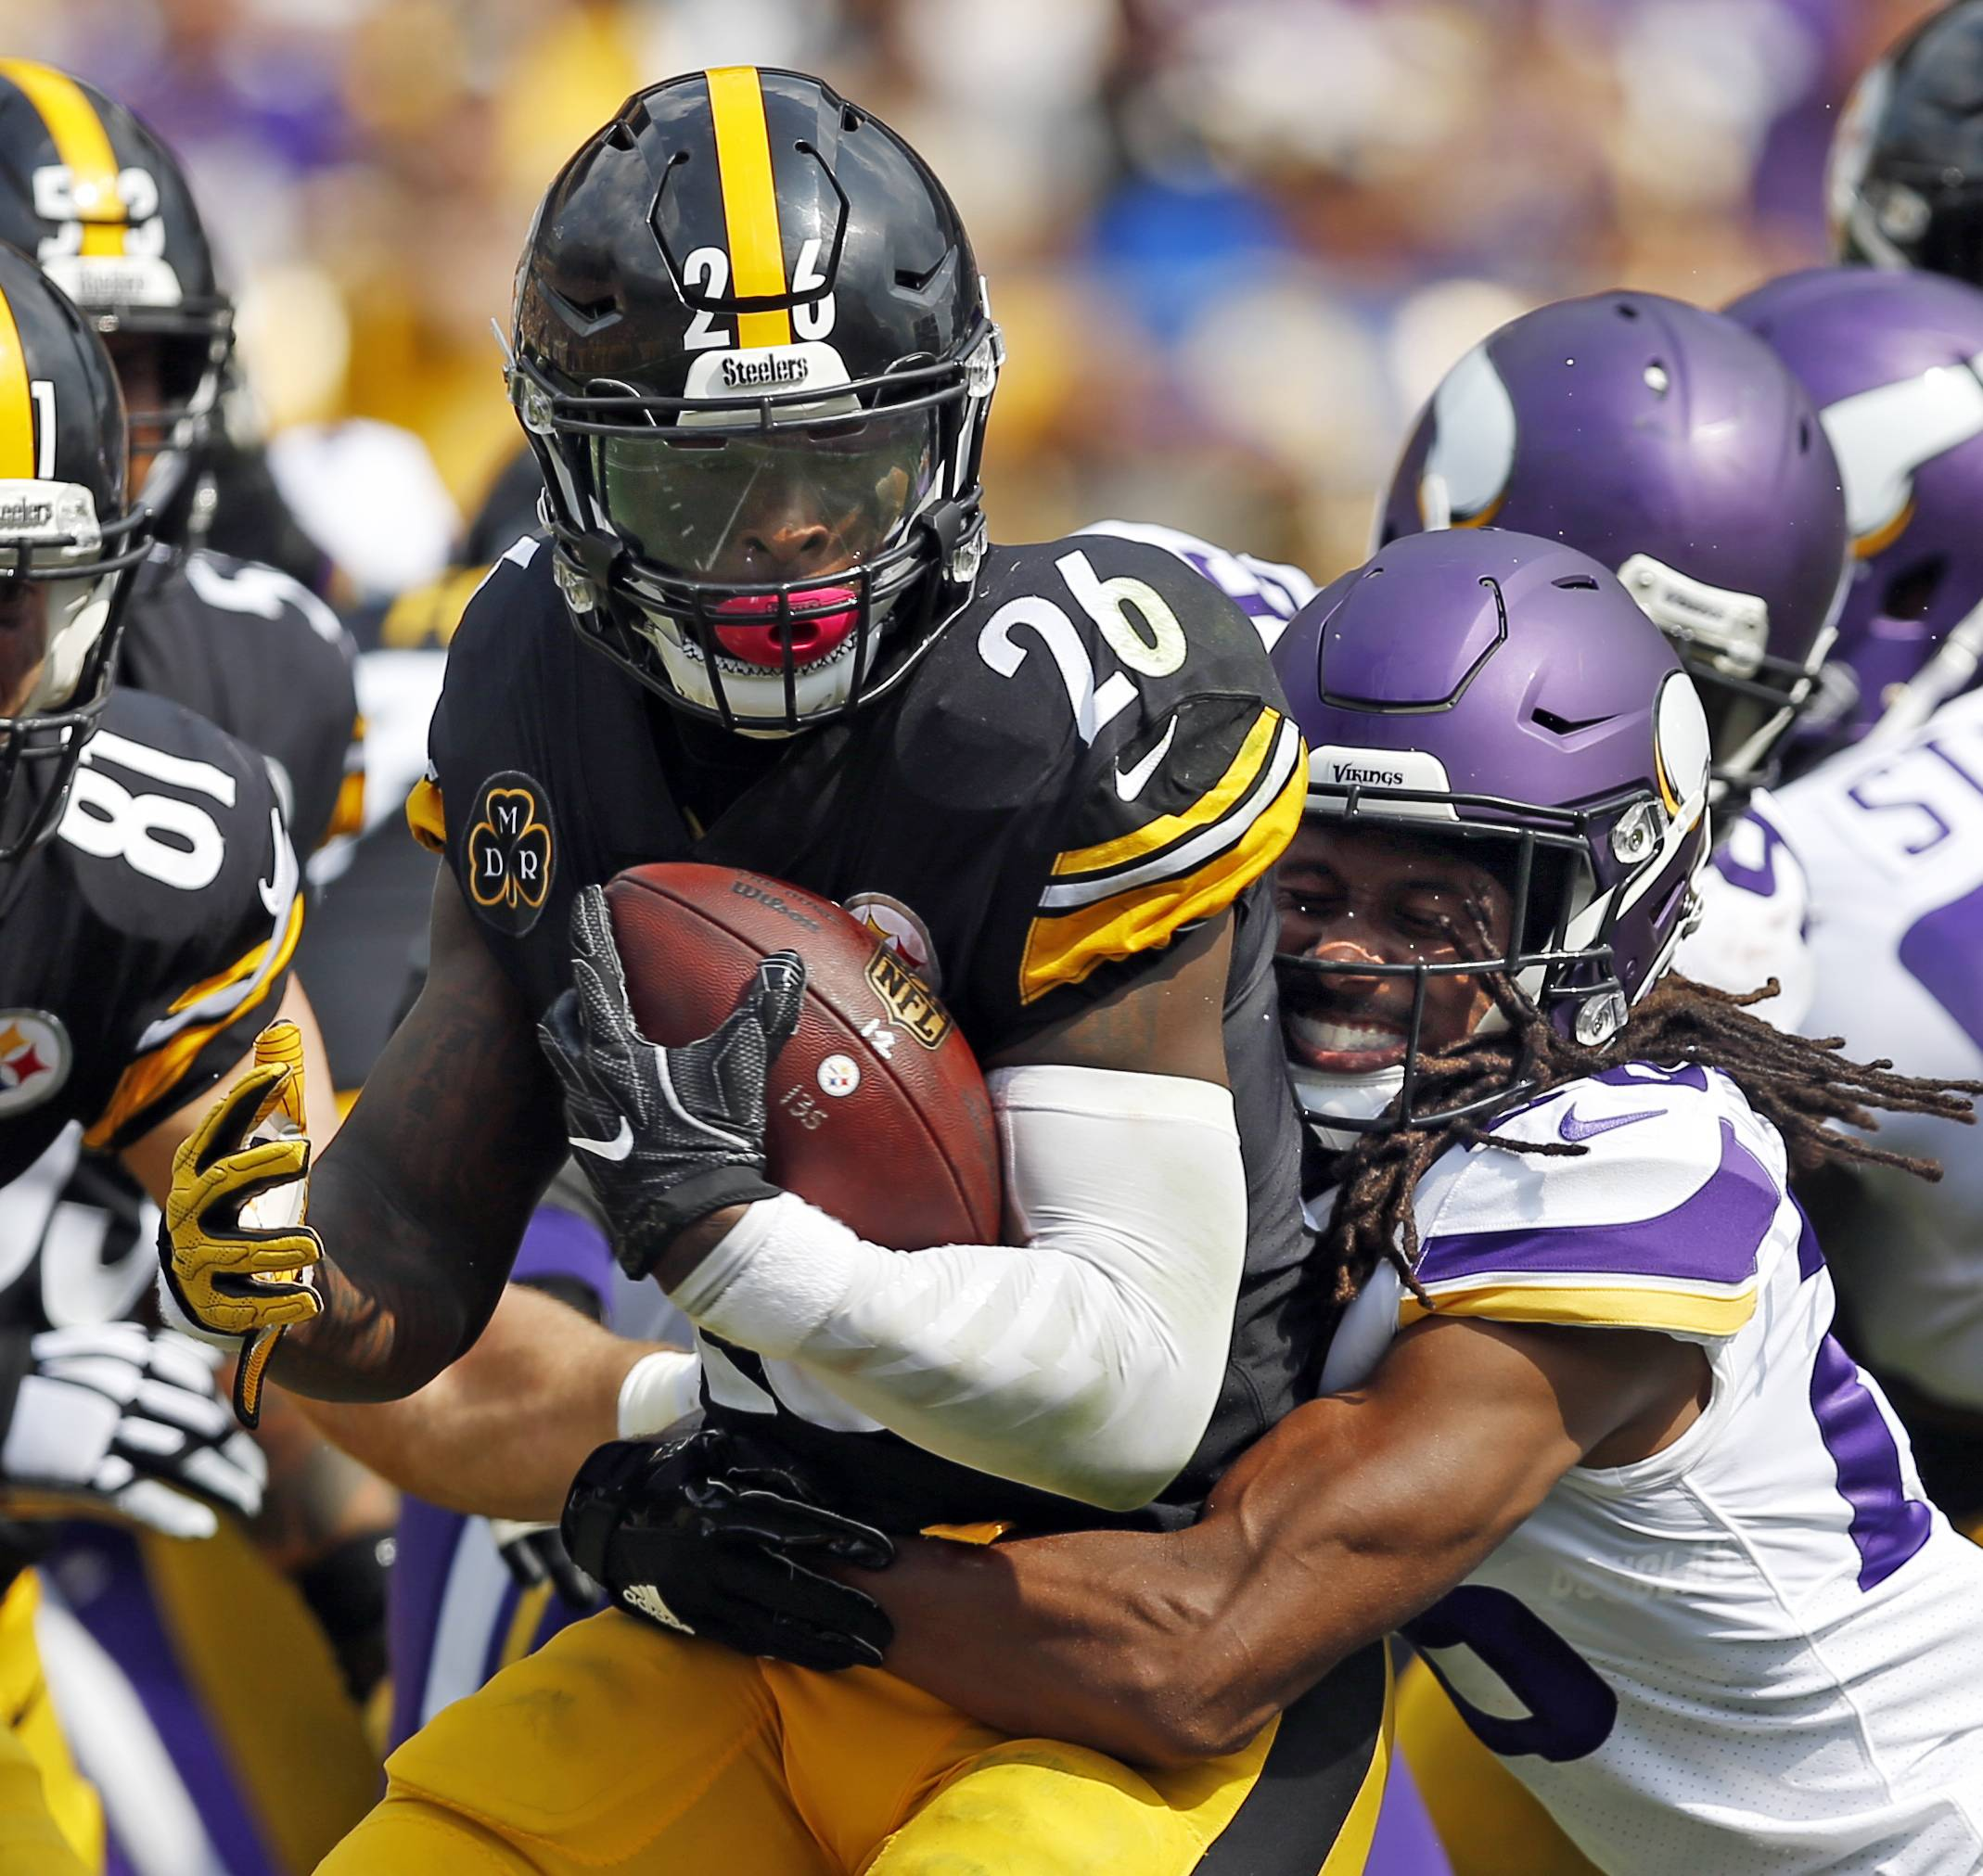 The Bears must make sure that Pittsburgh Steelers running back Le'Veon Bell doesn't have a big day on Sunday.